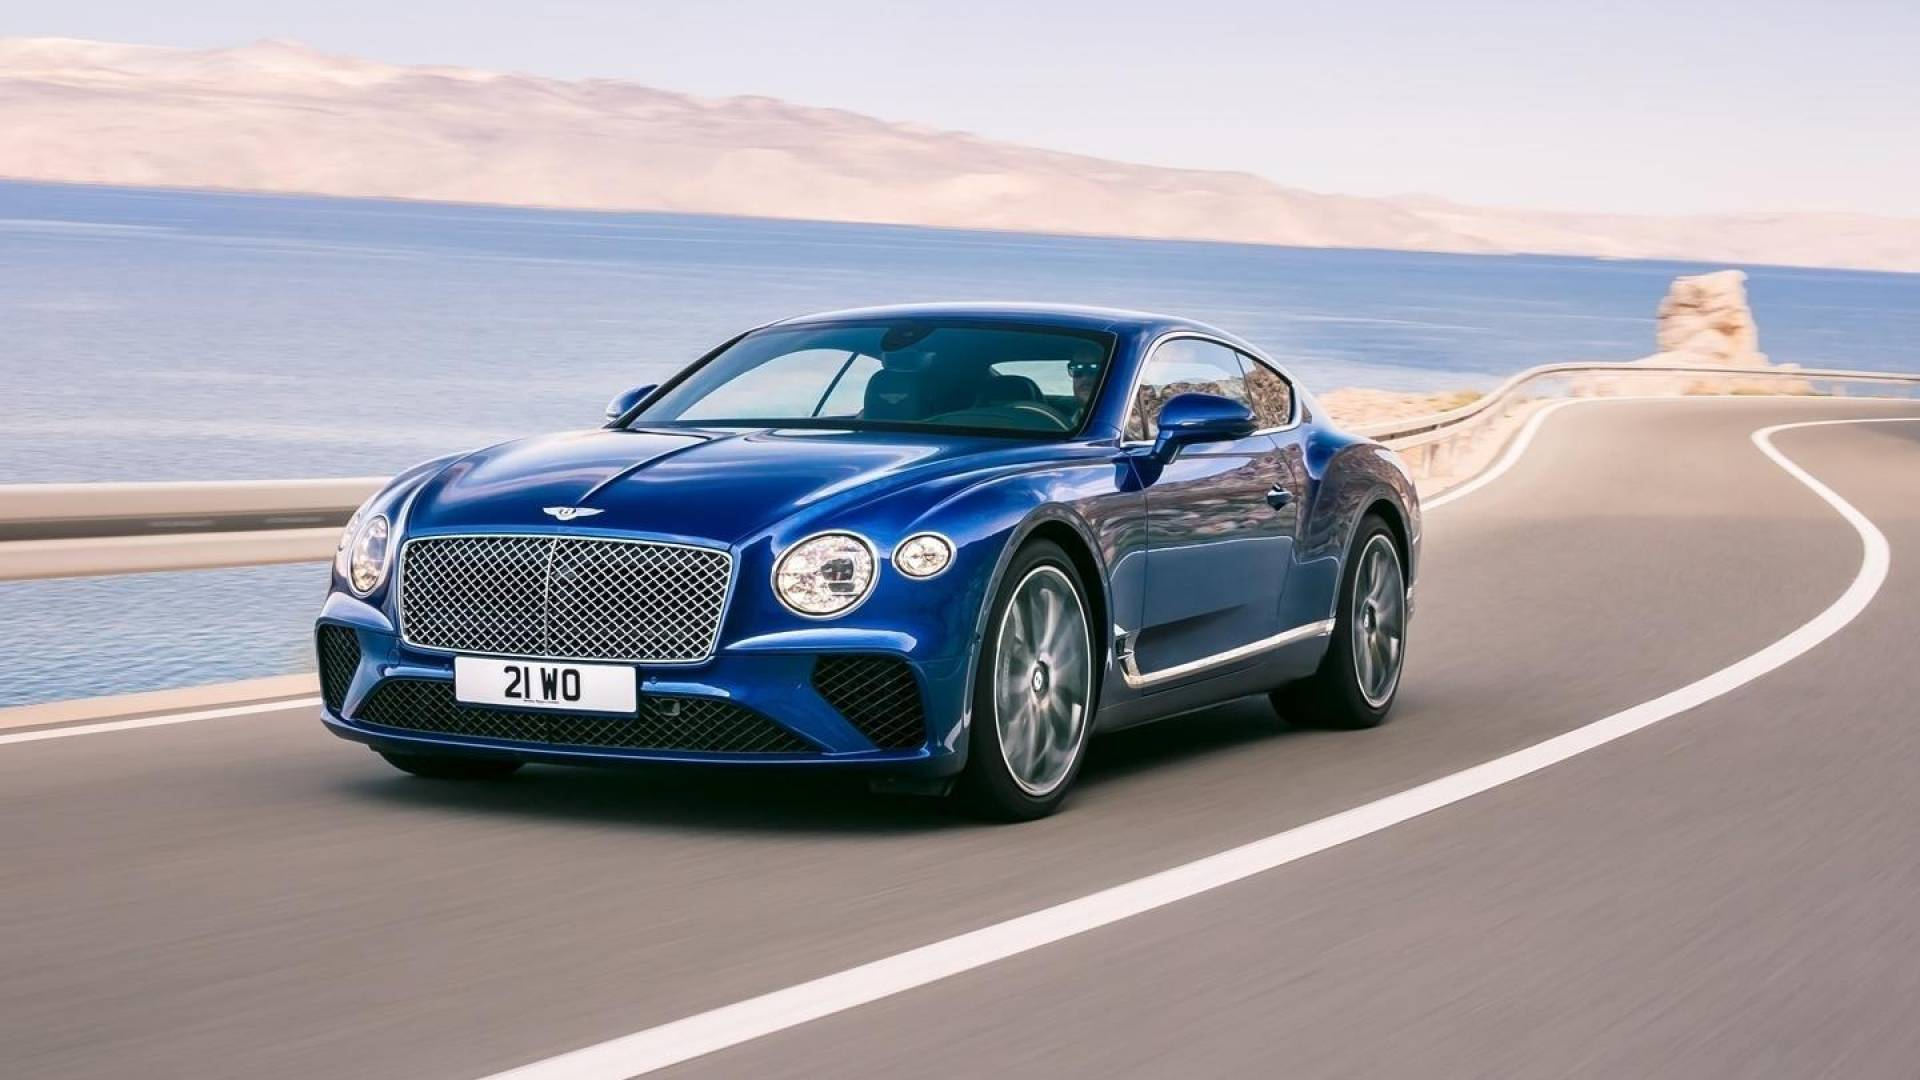 bentley-continental-gt-2018-ficha-002_1920x1600c.jpg